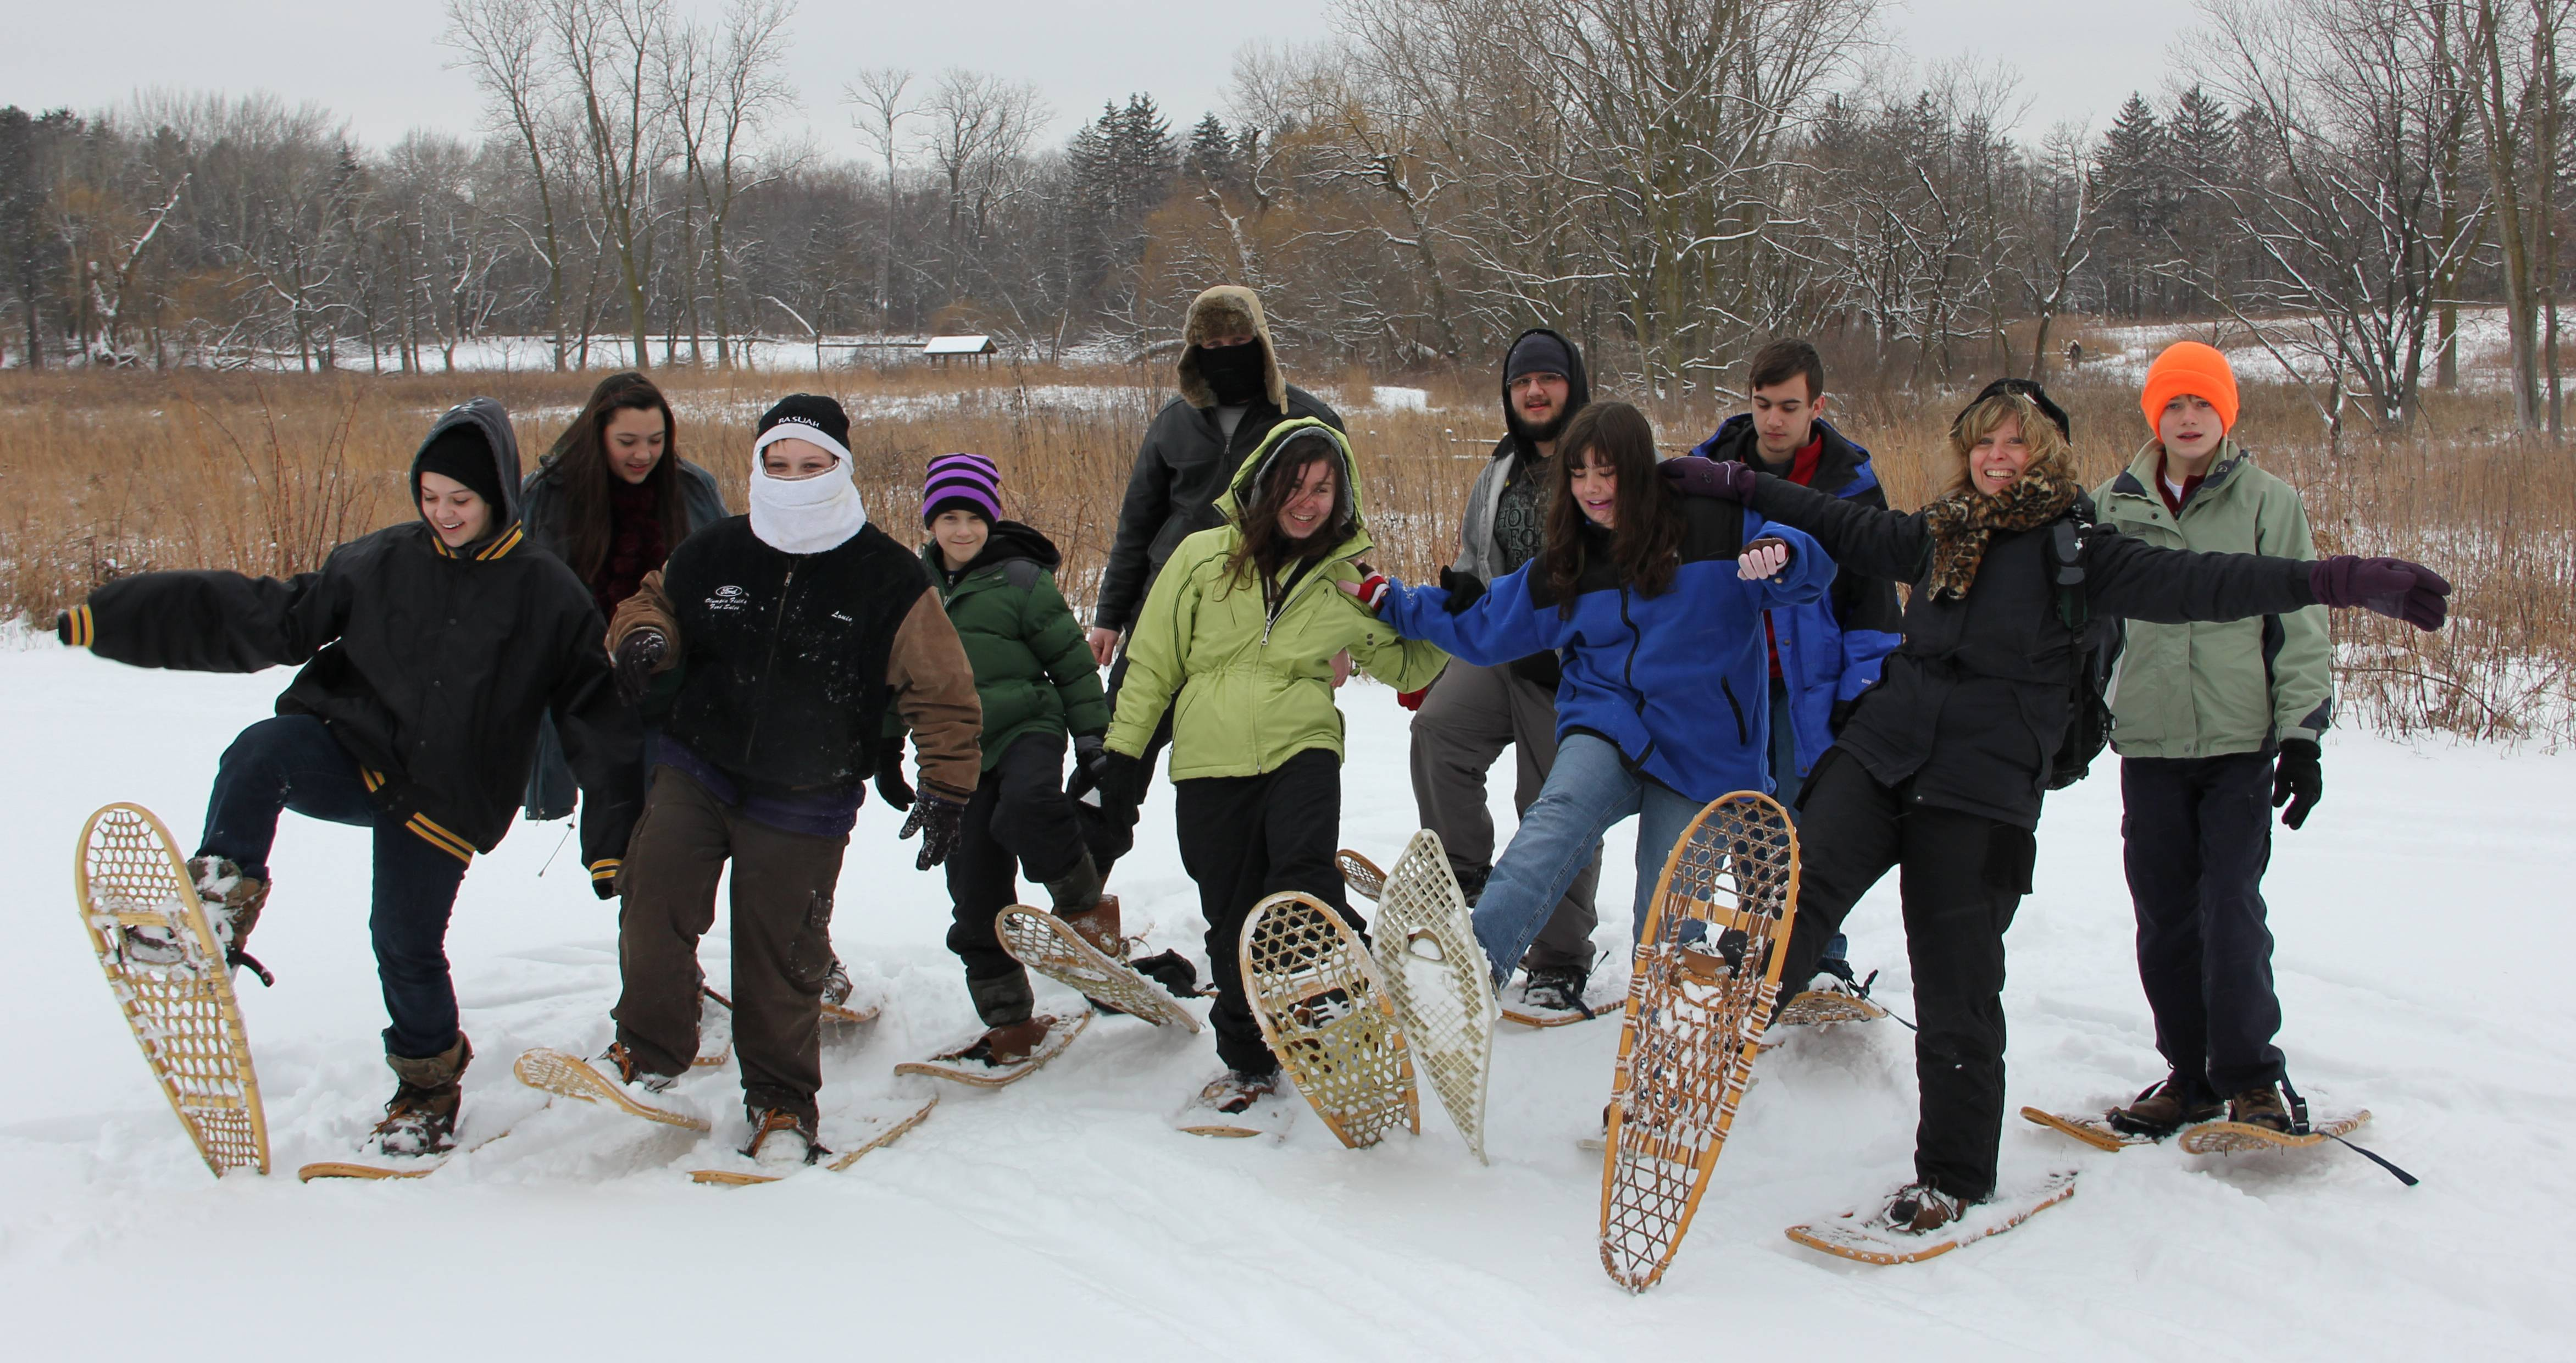 A group snowshoes at Spring Valley.